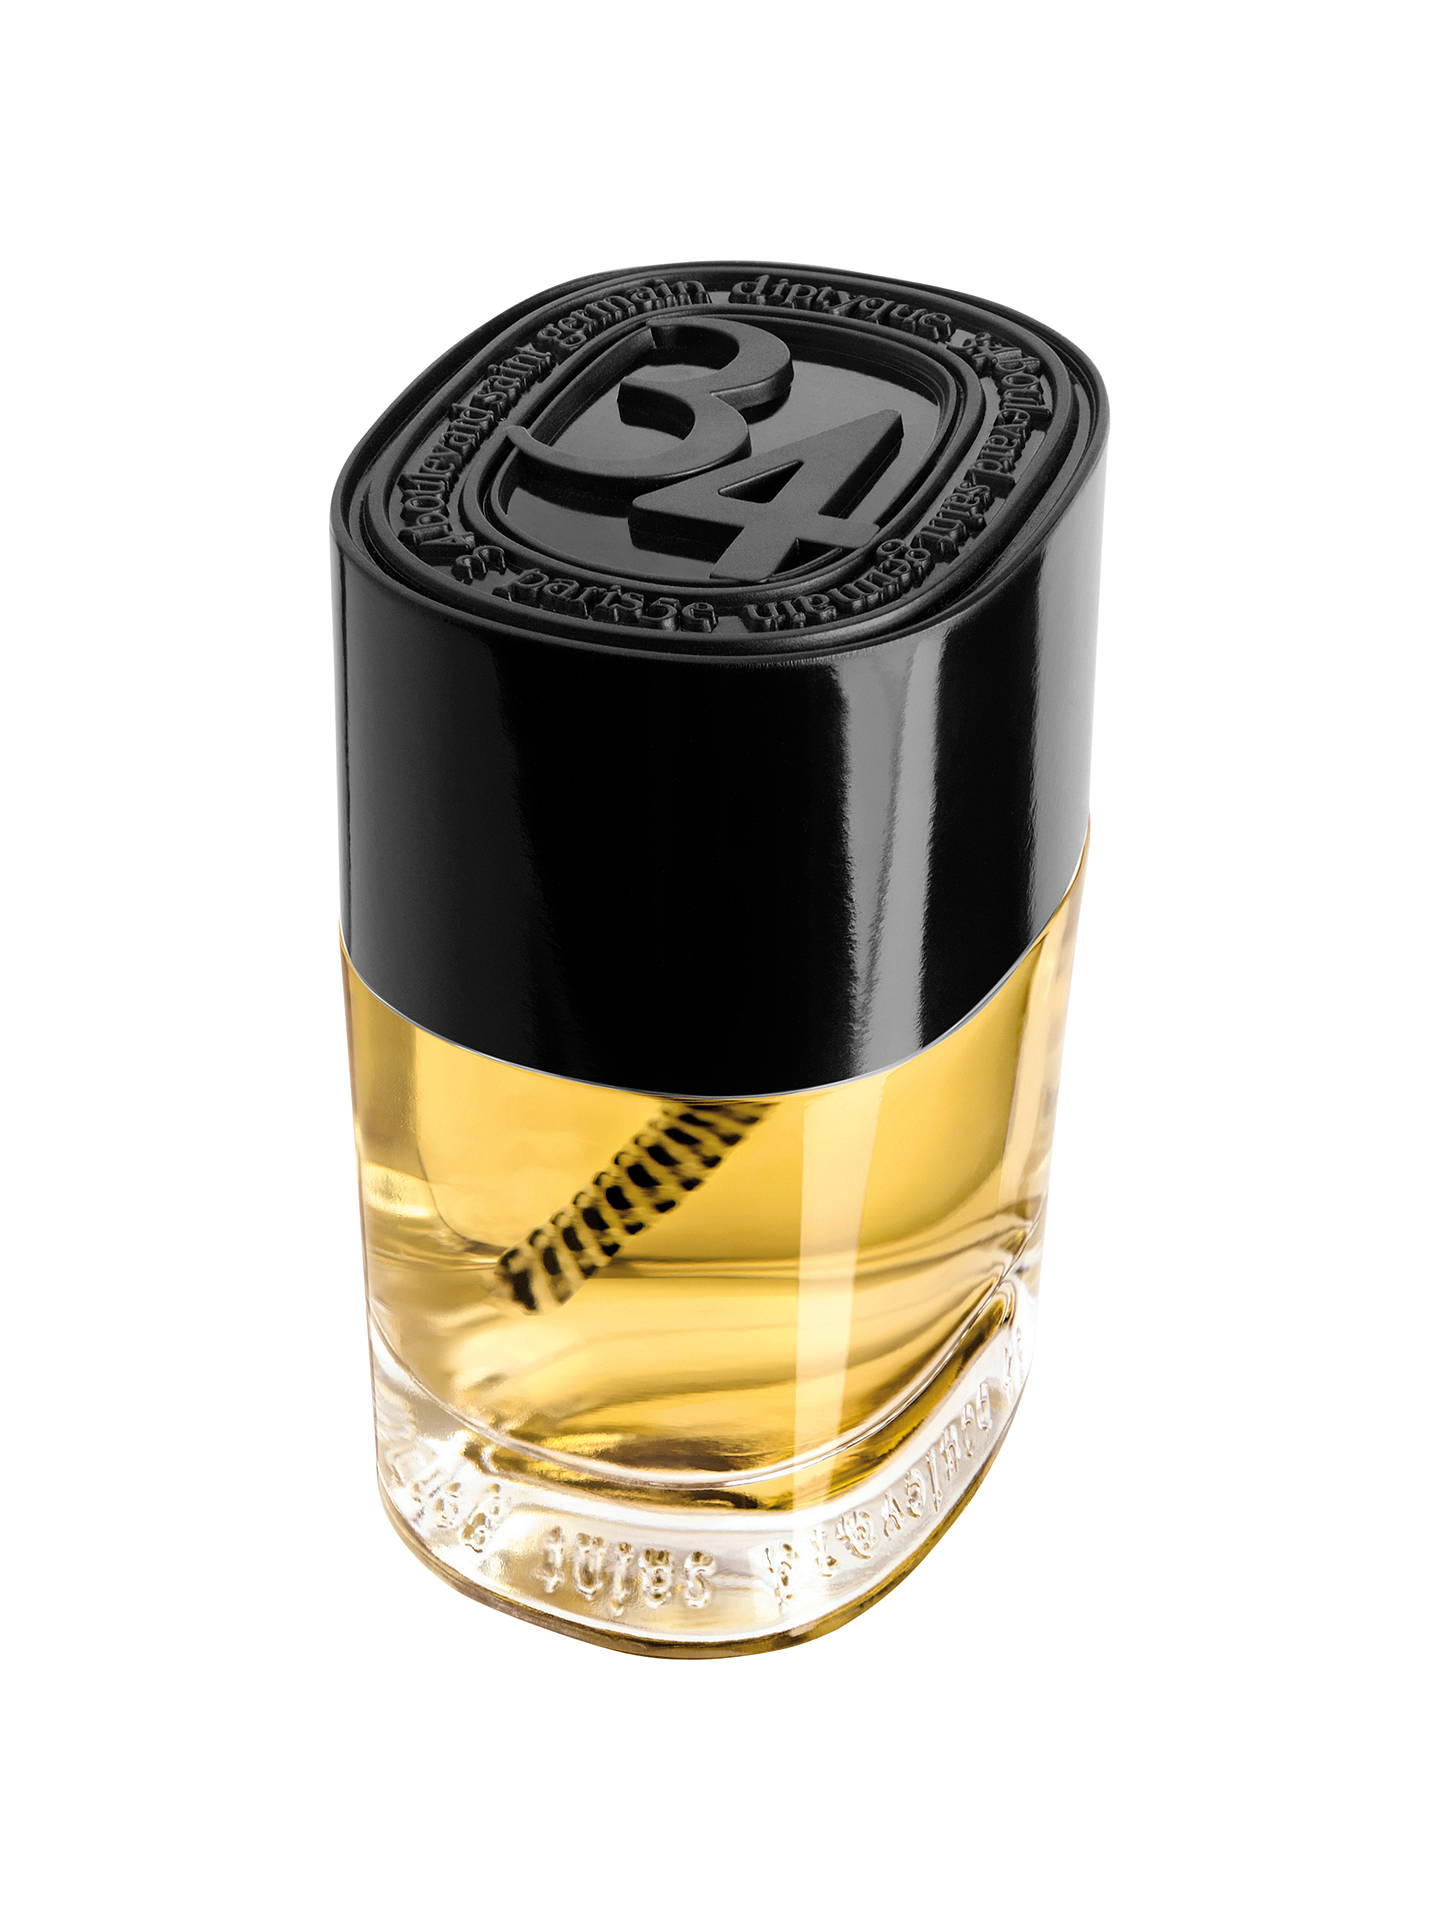 BuyDiptyque 34 Boulevard Saint Germain Eau de Toilette, 50ml Online at johnlewis.com